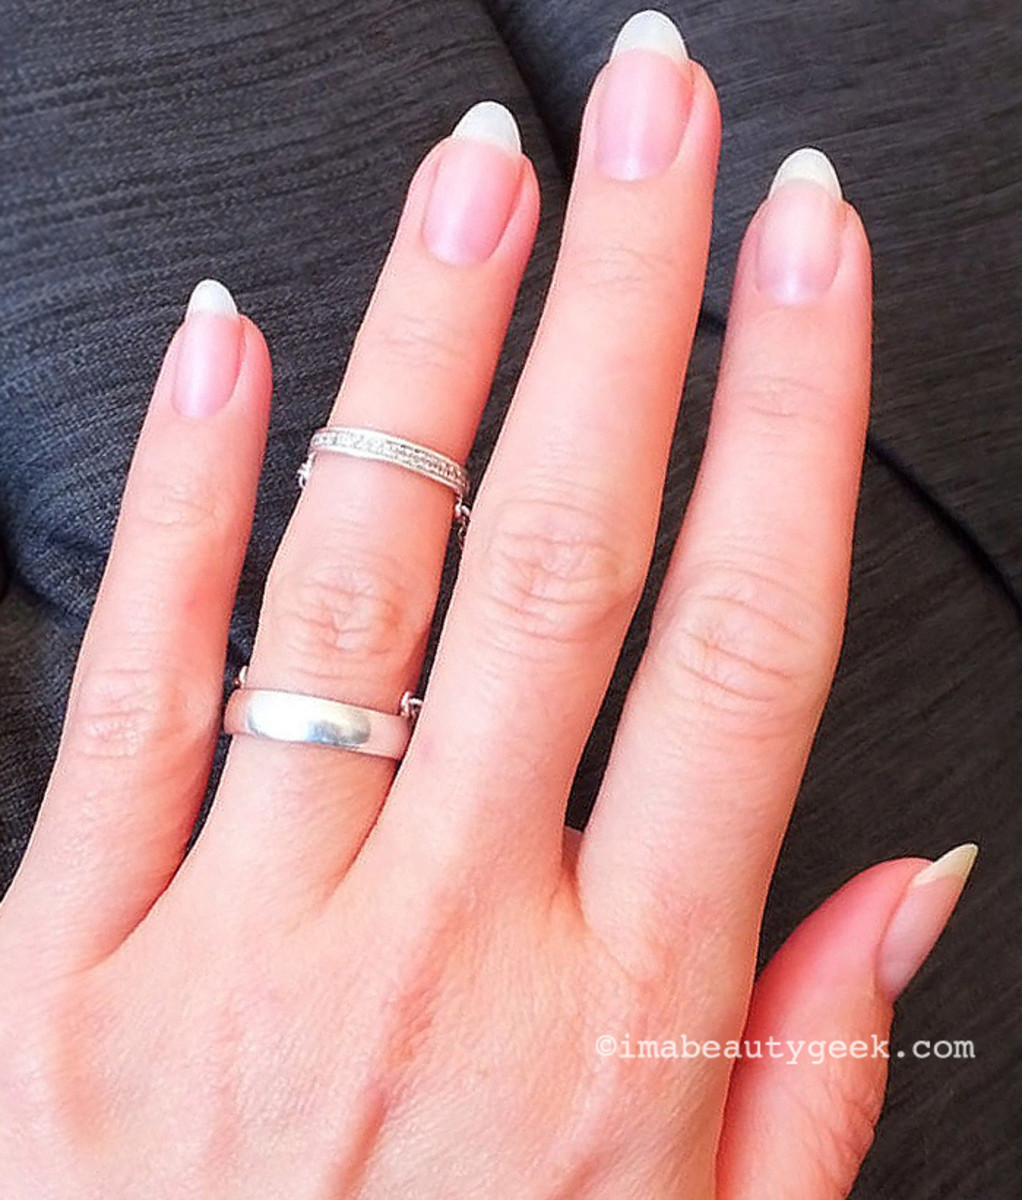 wax or shave hairy knuckles_nails after years of uv manicures